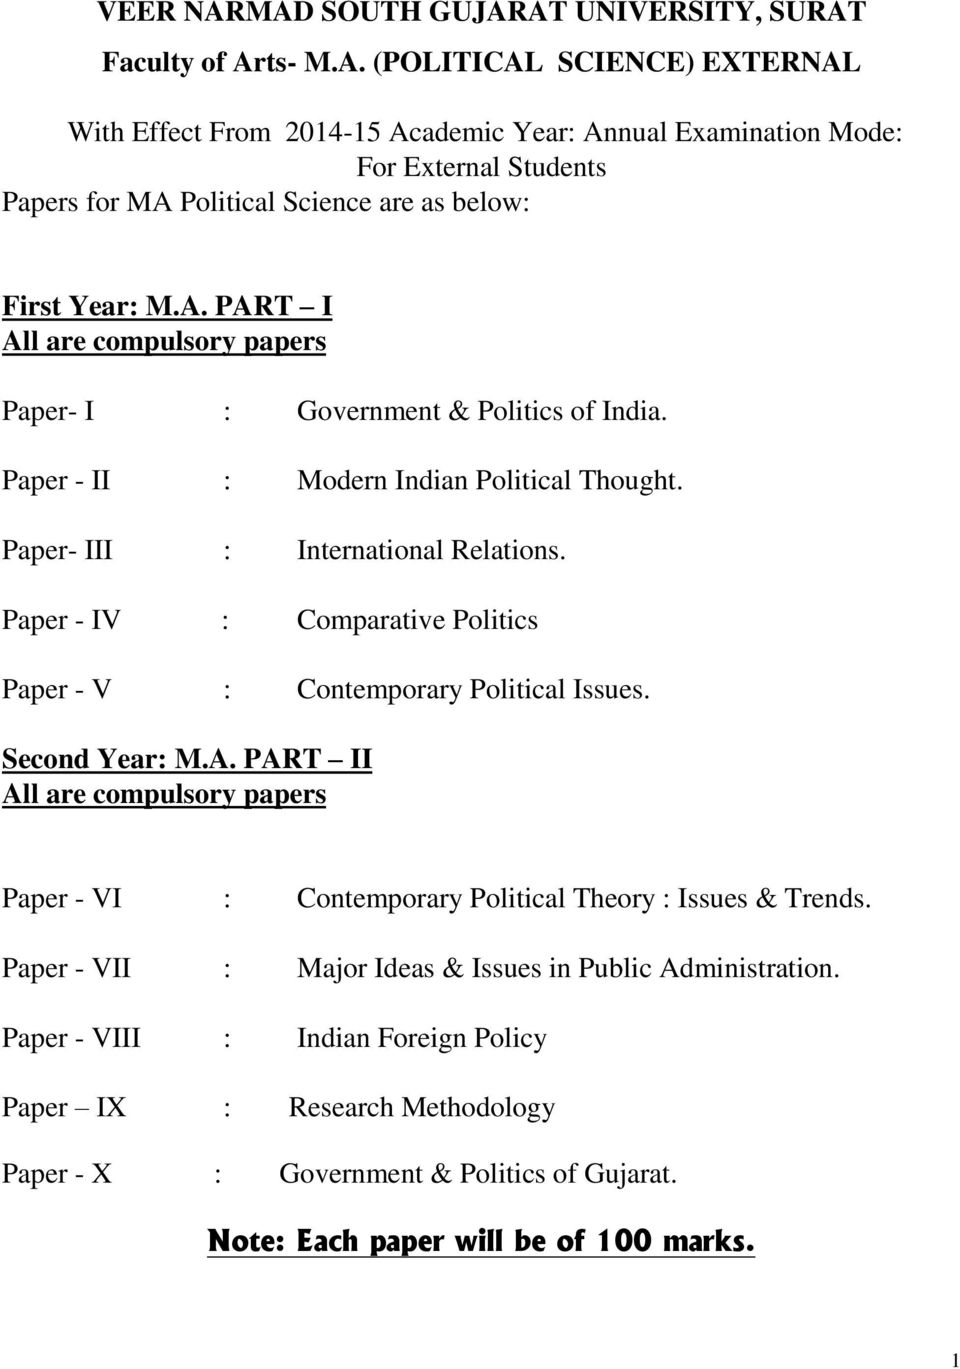 political issue essay topics political issue essay topics gxart comparative politics research essay topics essayveer narmad south gujarat university surat faculty of arts essay topics